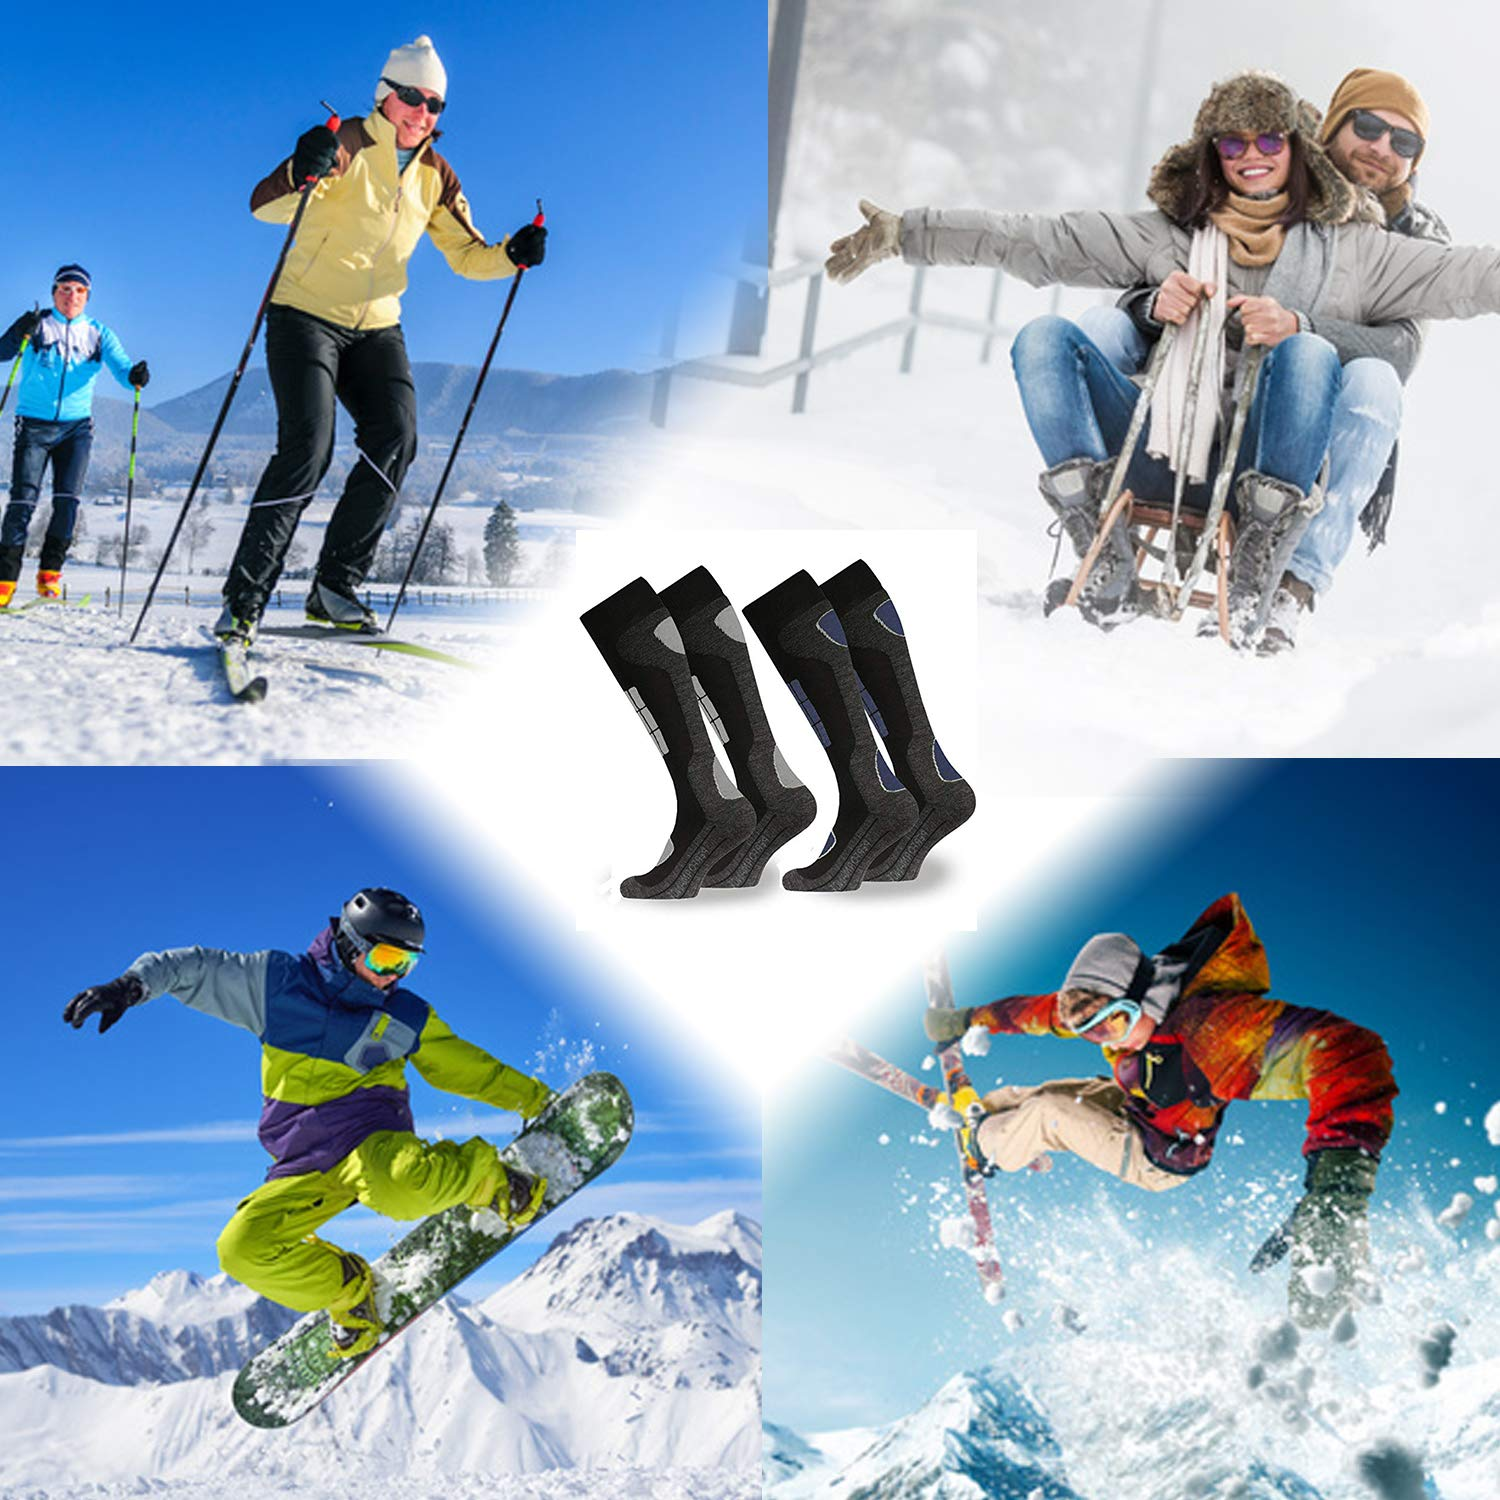 Socken Ski Funktionssocken Thermosocken Wintersocken Skisocken Kniestrümpfe Snowboard